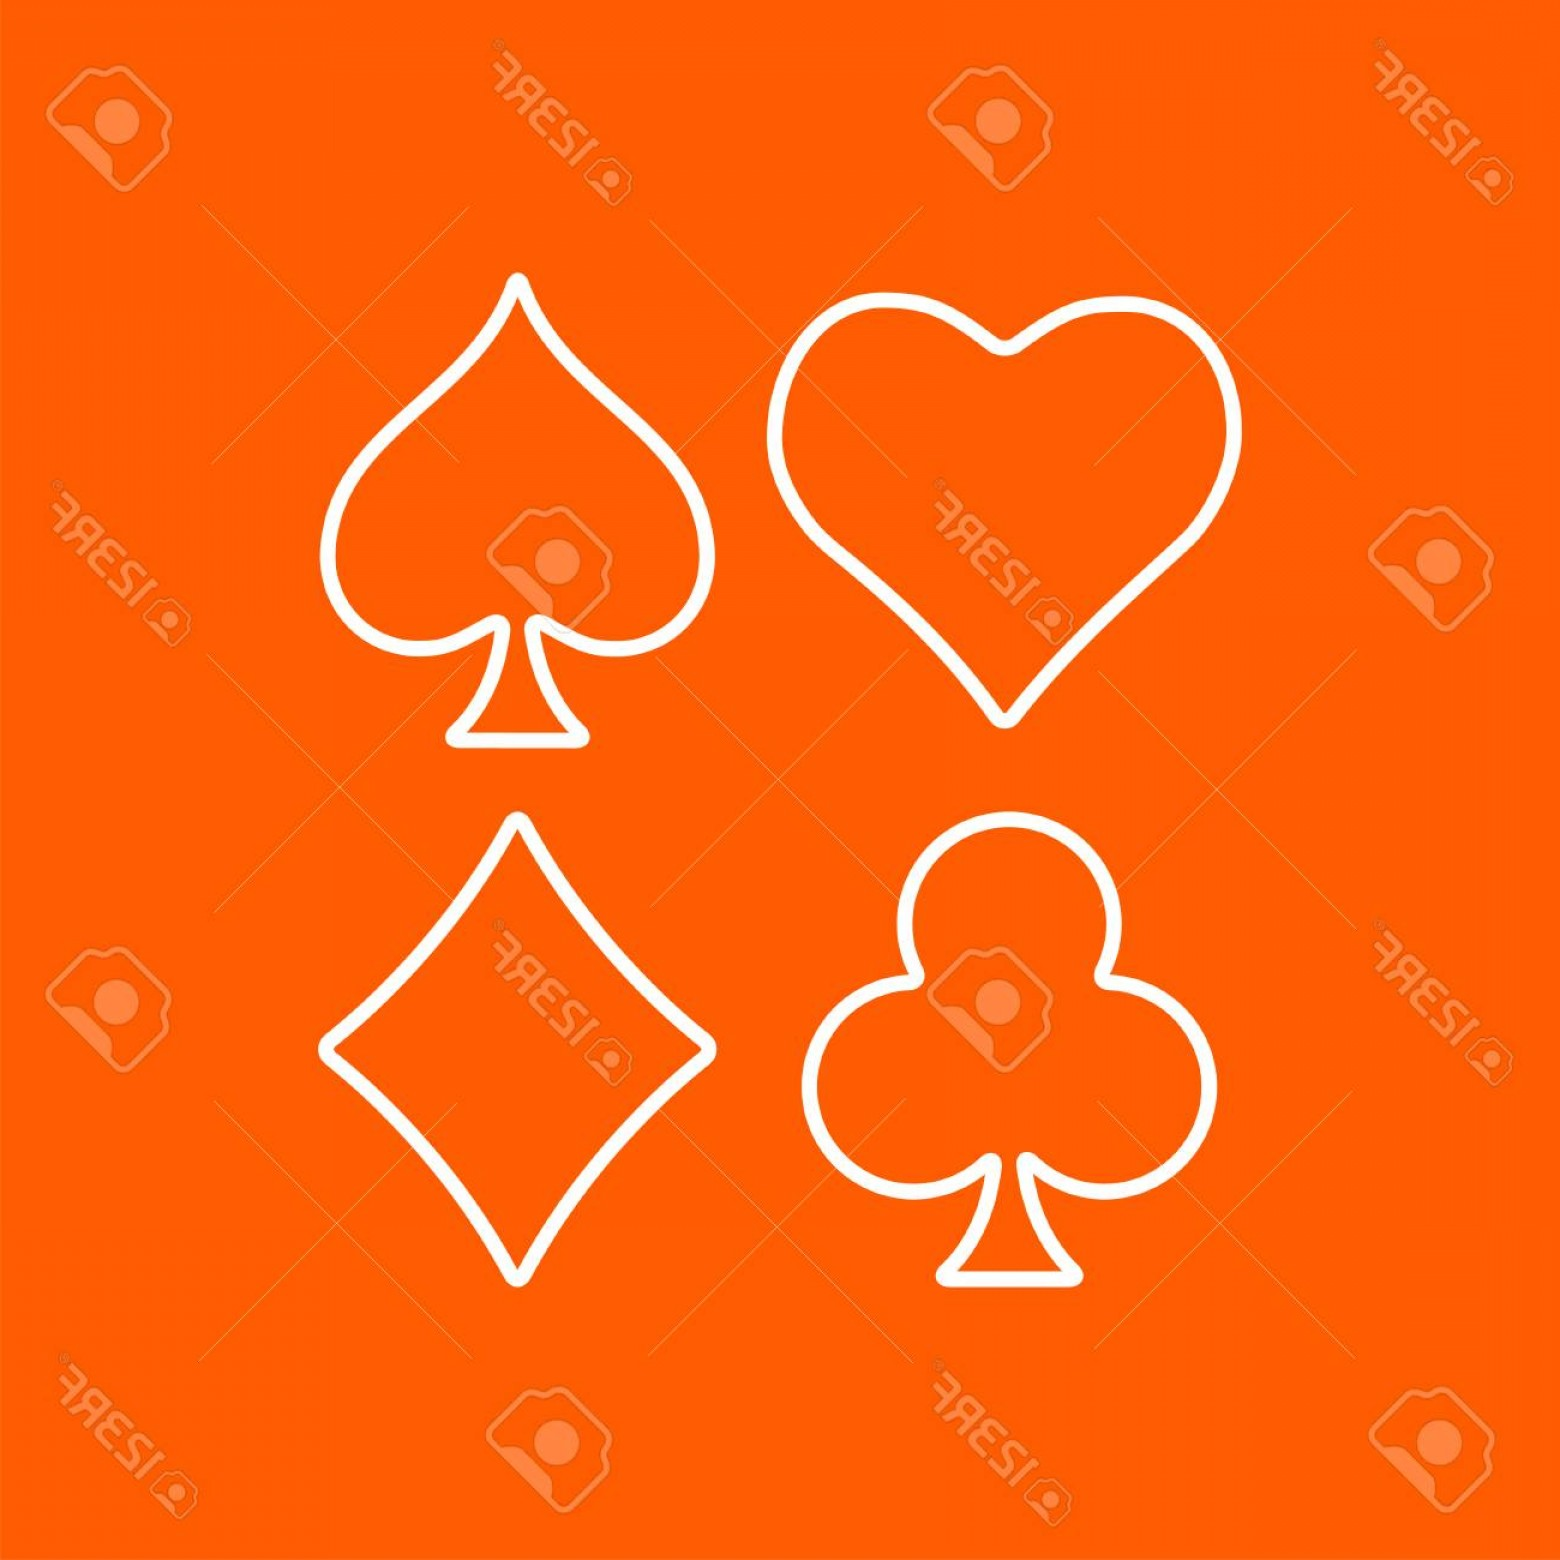 Card Suits Vector Outlines: Photostock Vector Vector Outline Game Casino Cards Suit Icon On Color Background